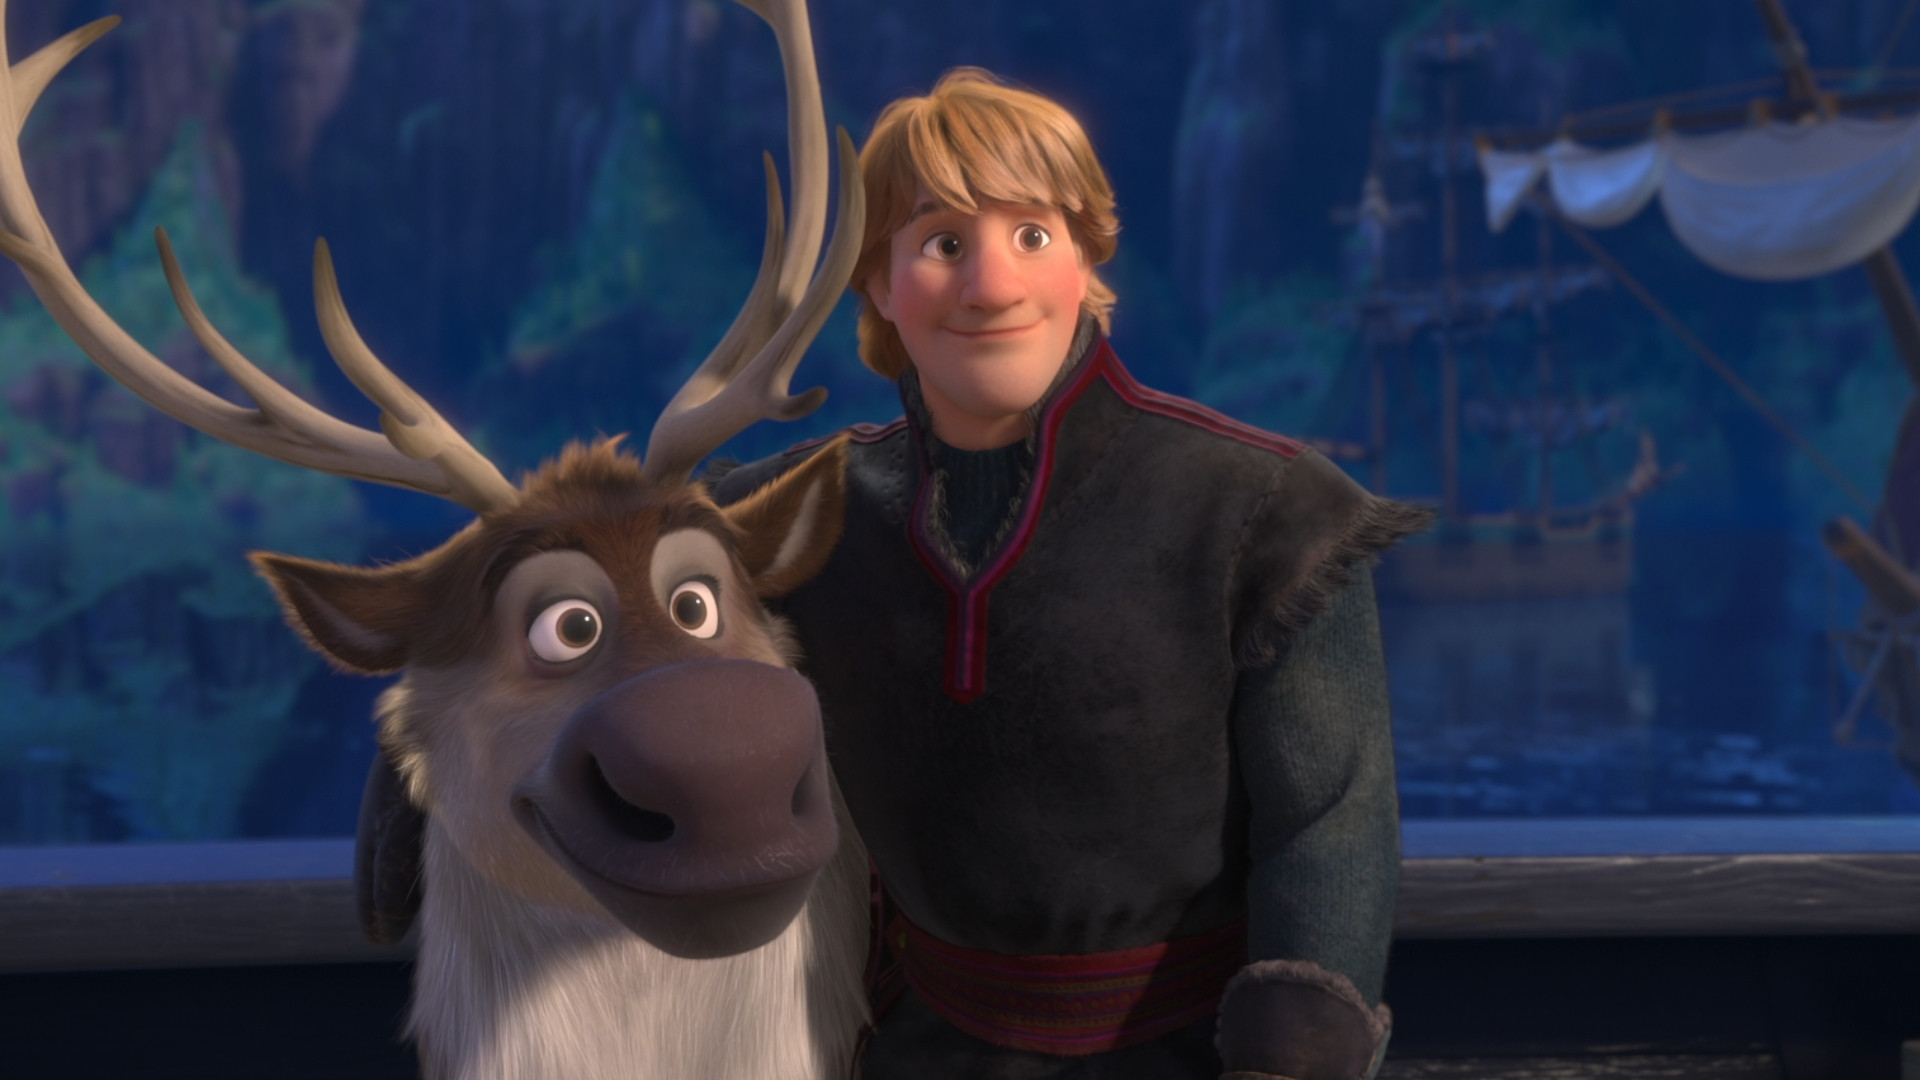 Sven and Kristoff from Frozen